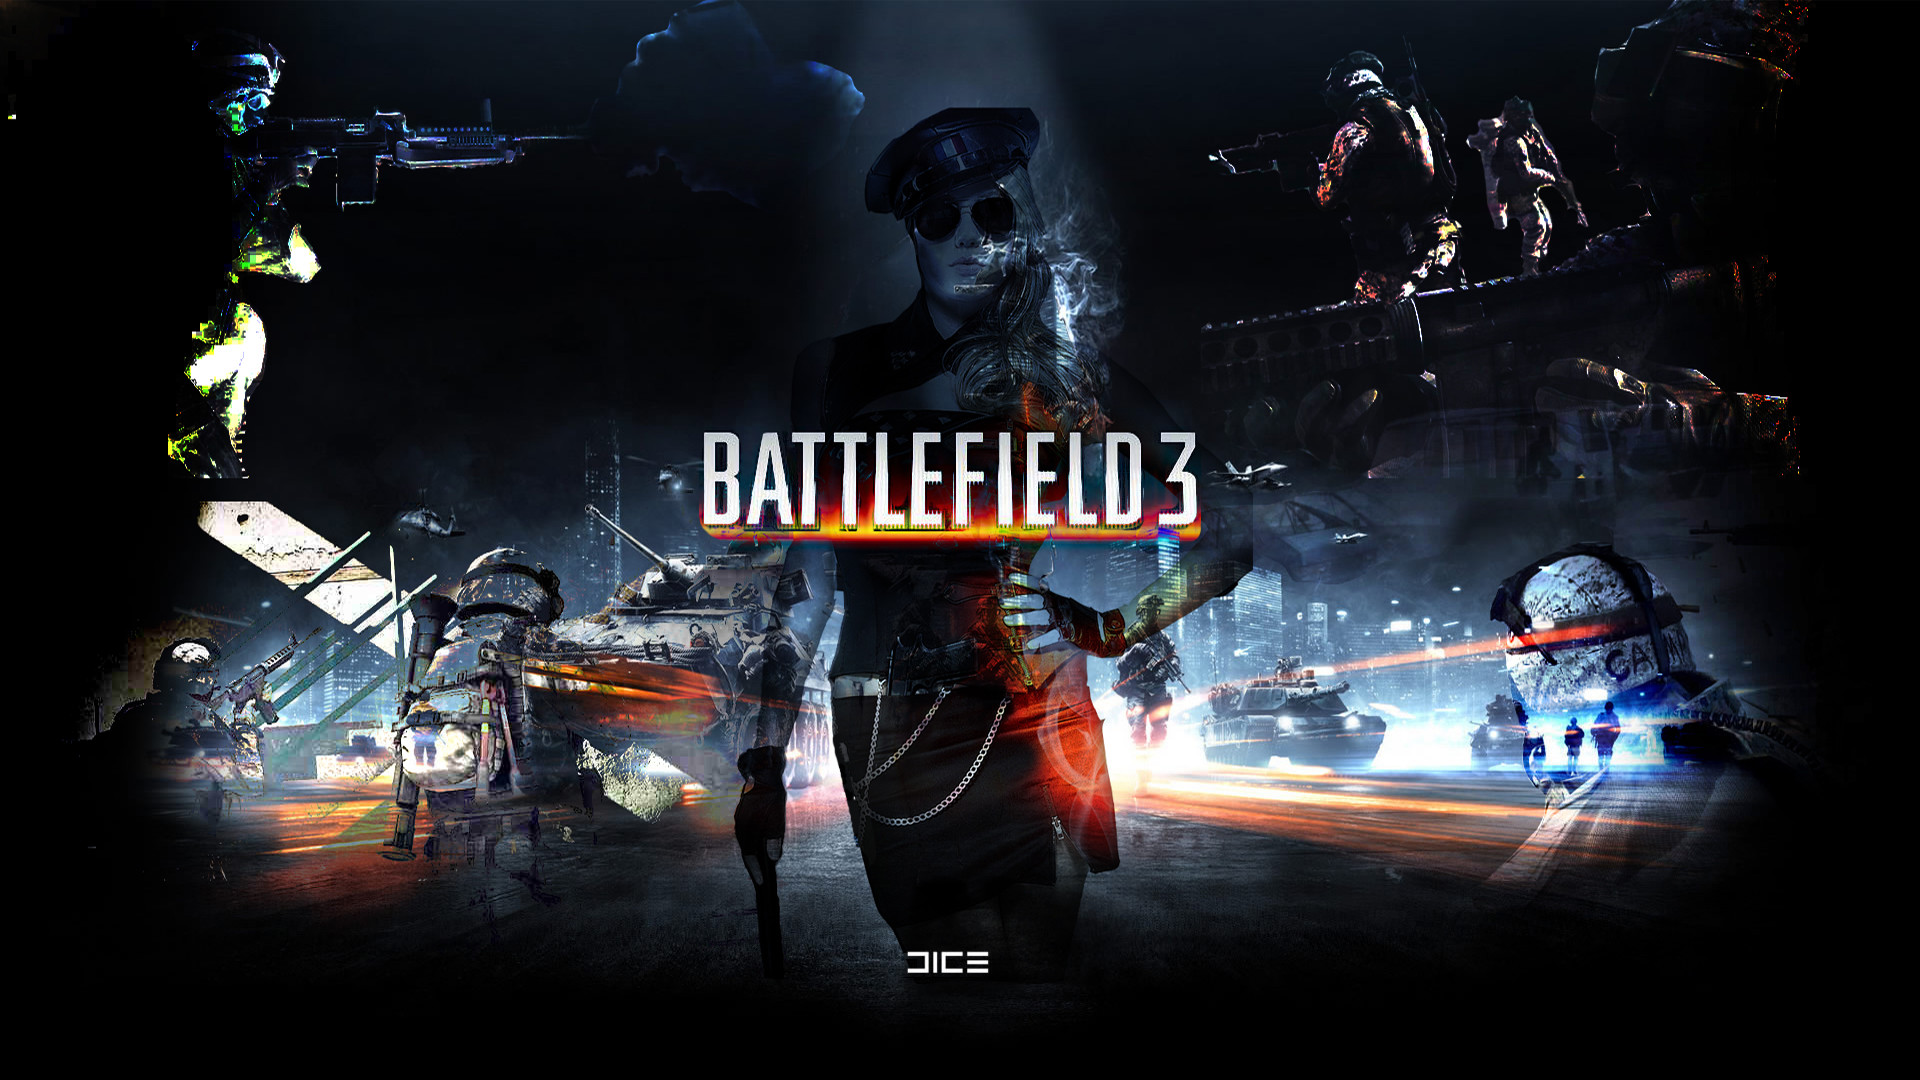 Res: 1920x1080, Battlefield 3 HD Wallpaper | Background Image |  | ID:151206 -  Wallpaper Abyss